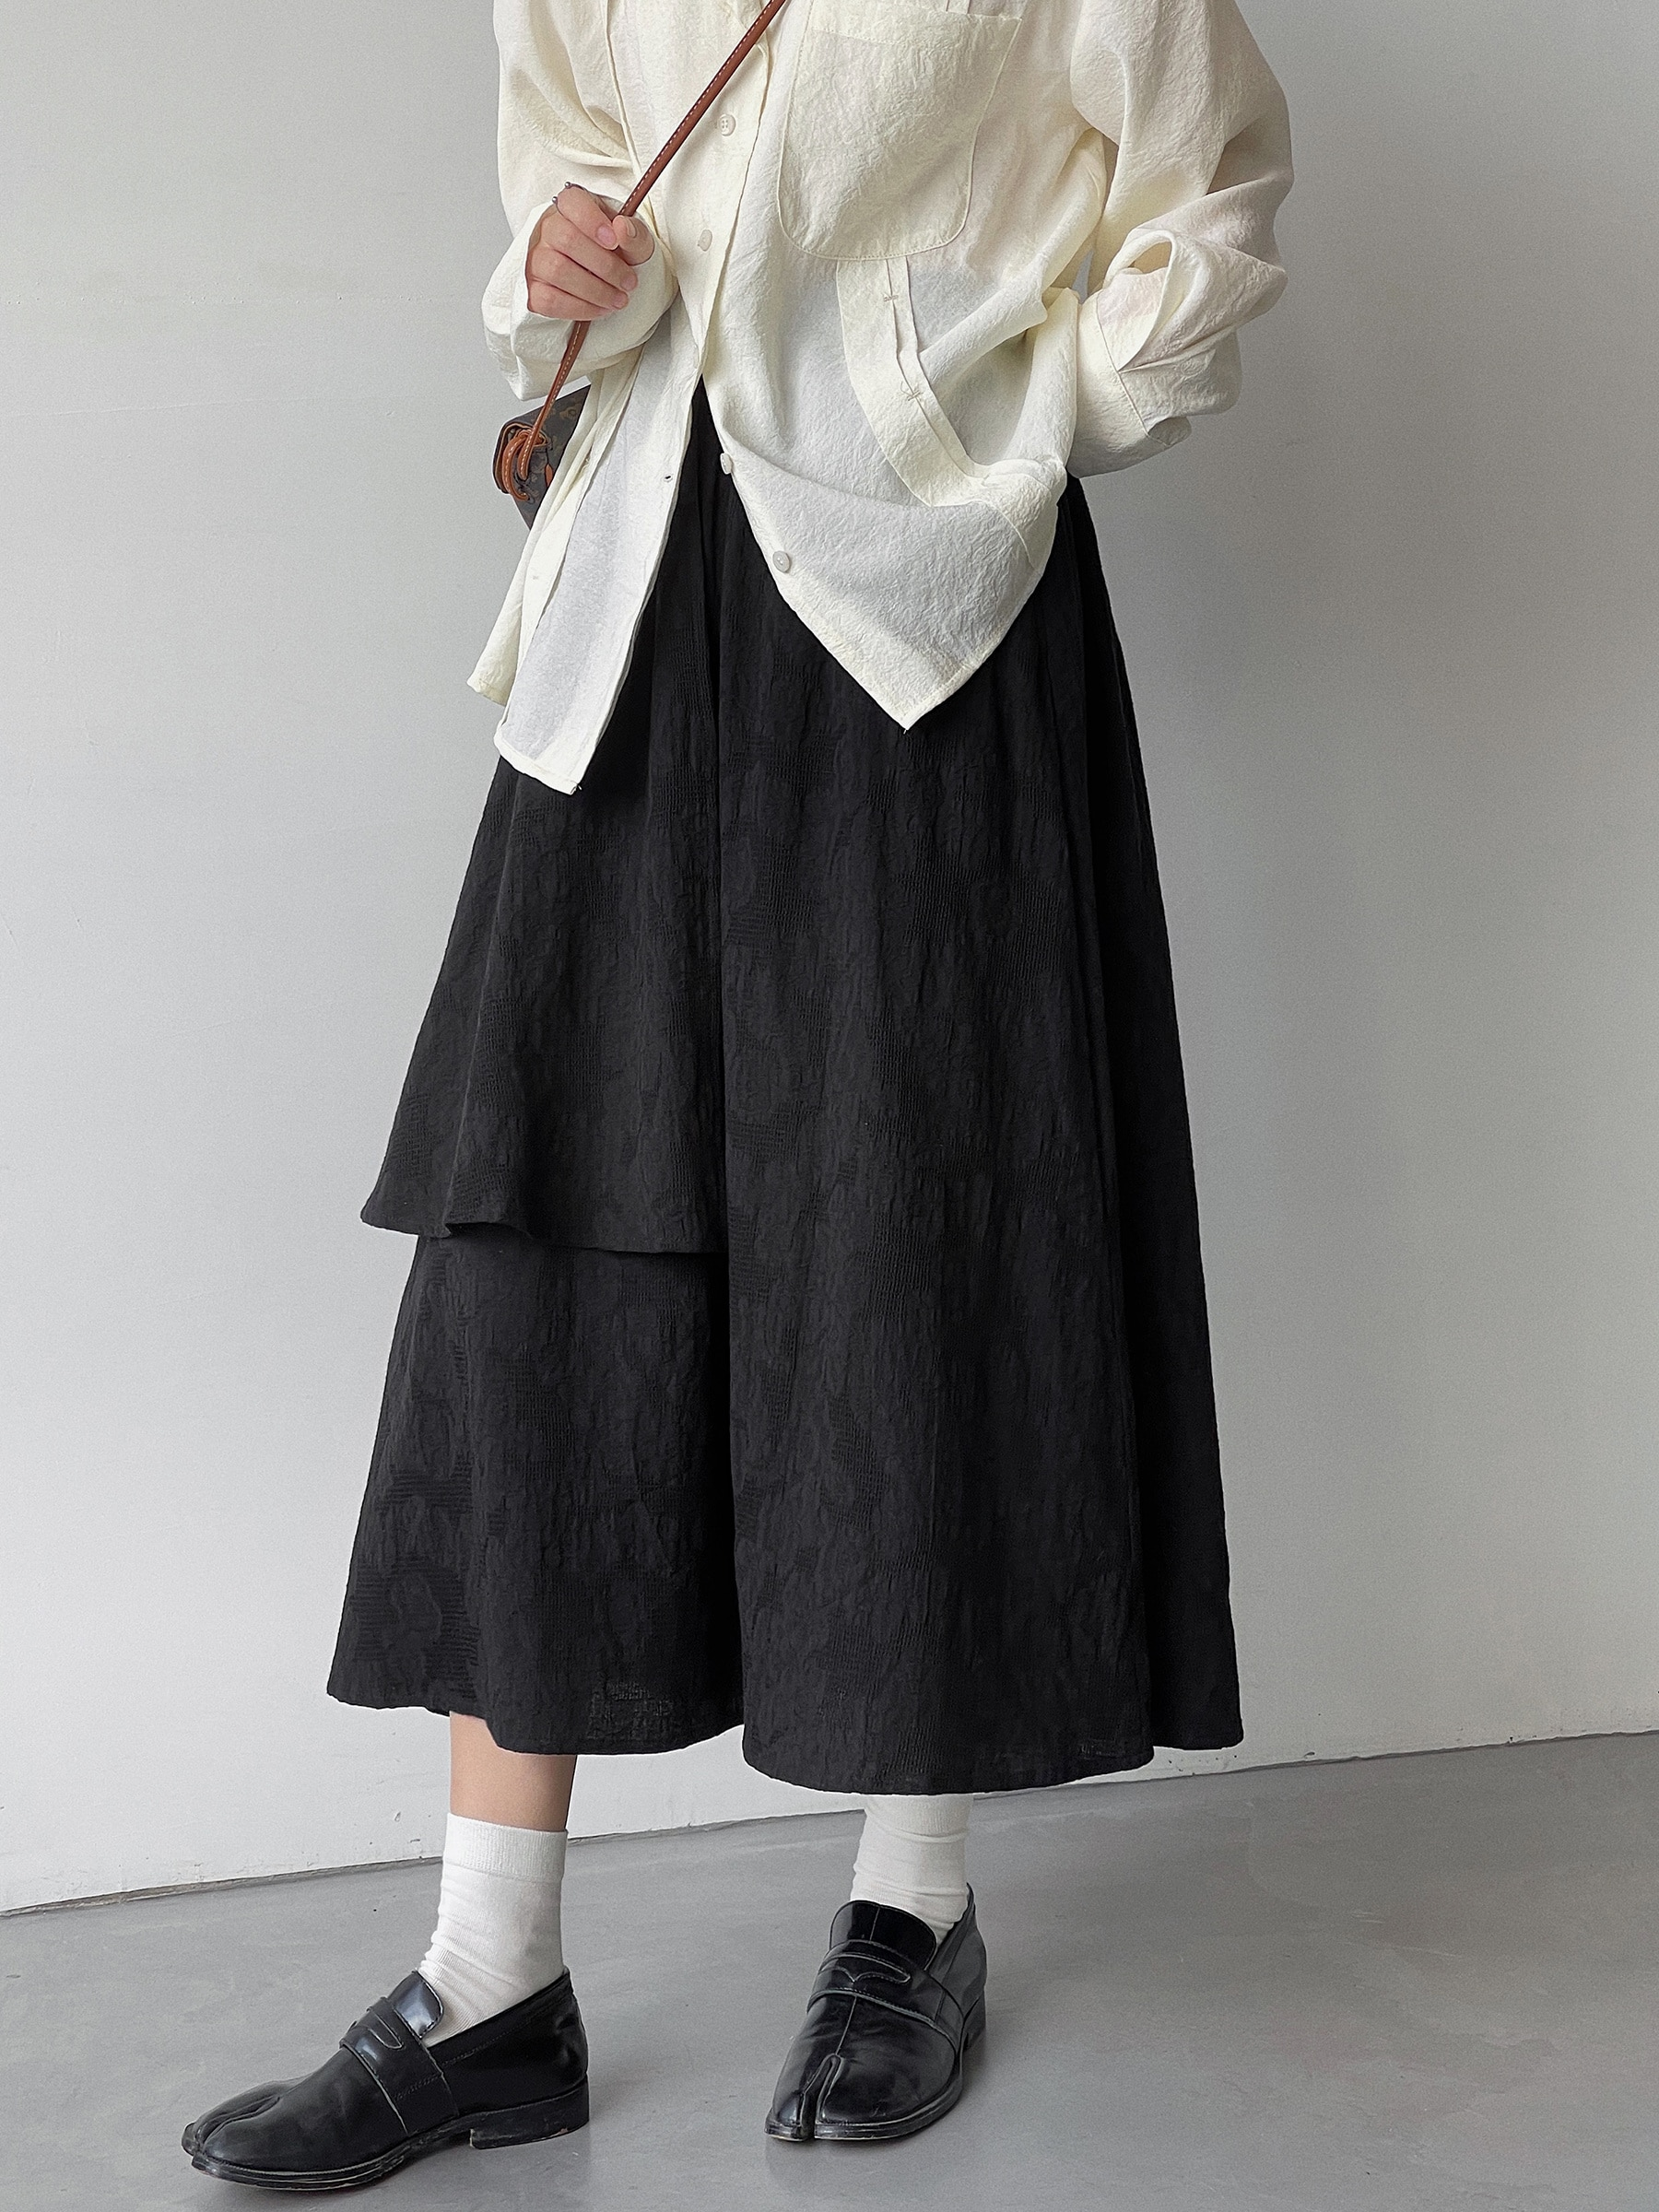 Cotton Two-layer Skirt for Women in Early Autumn 2021